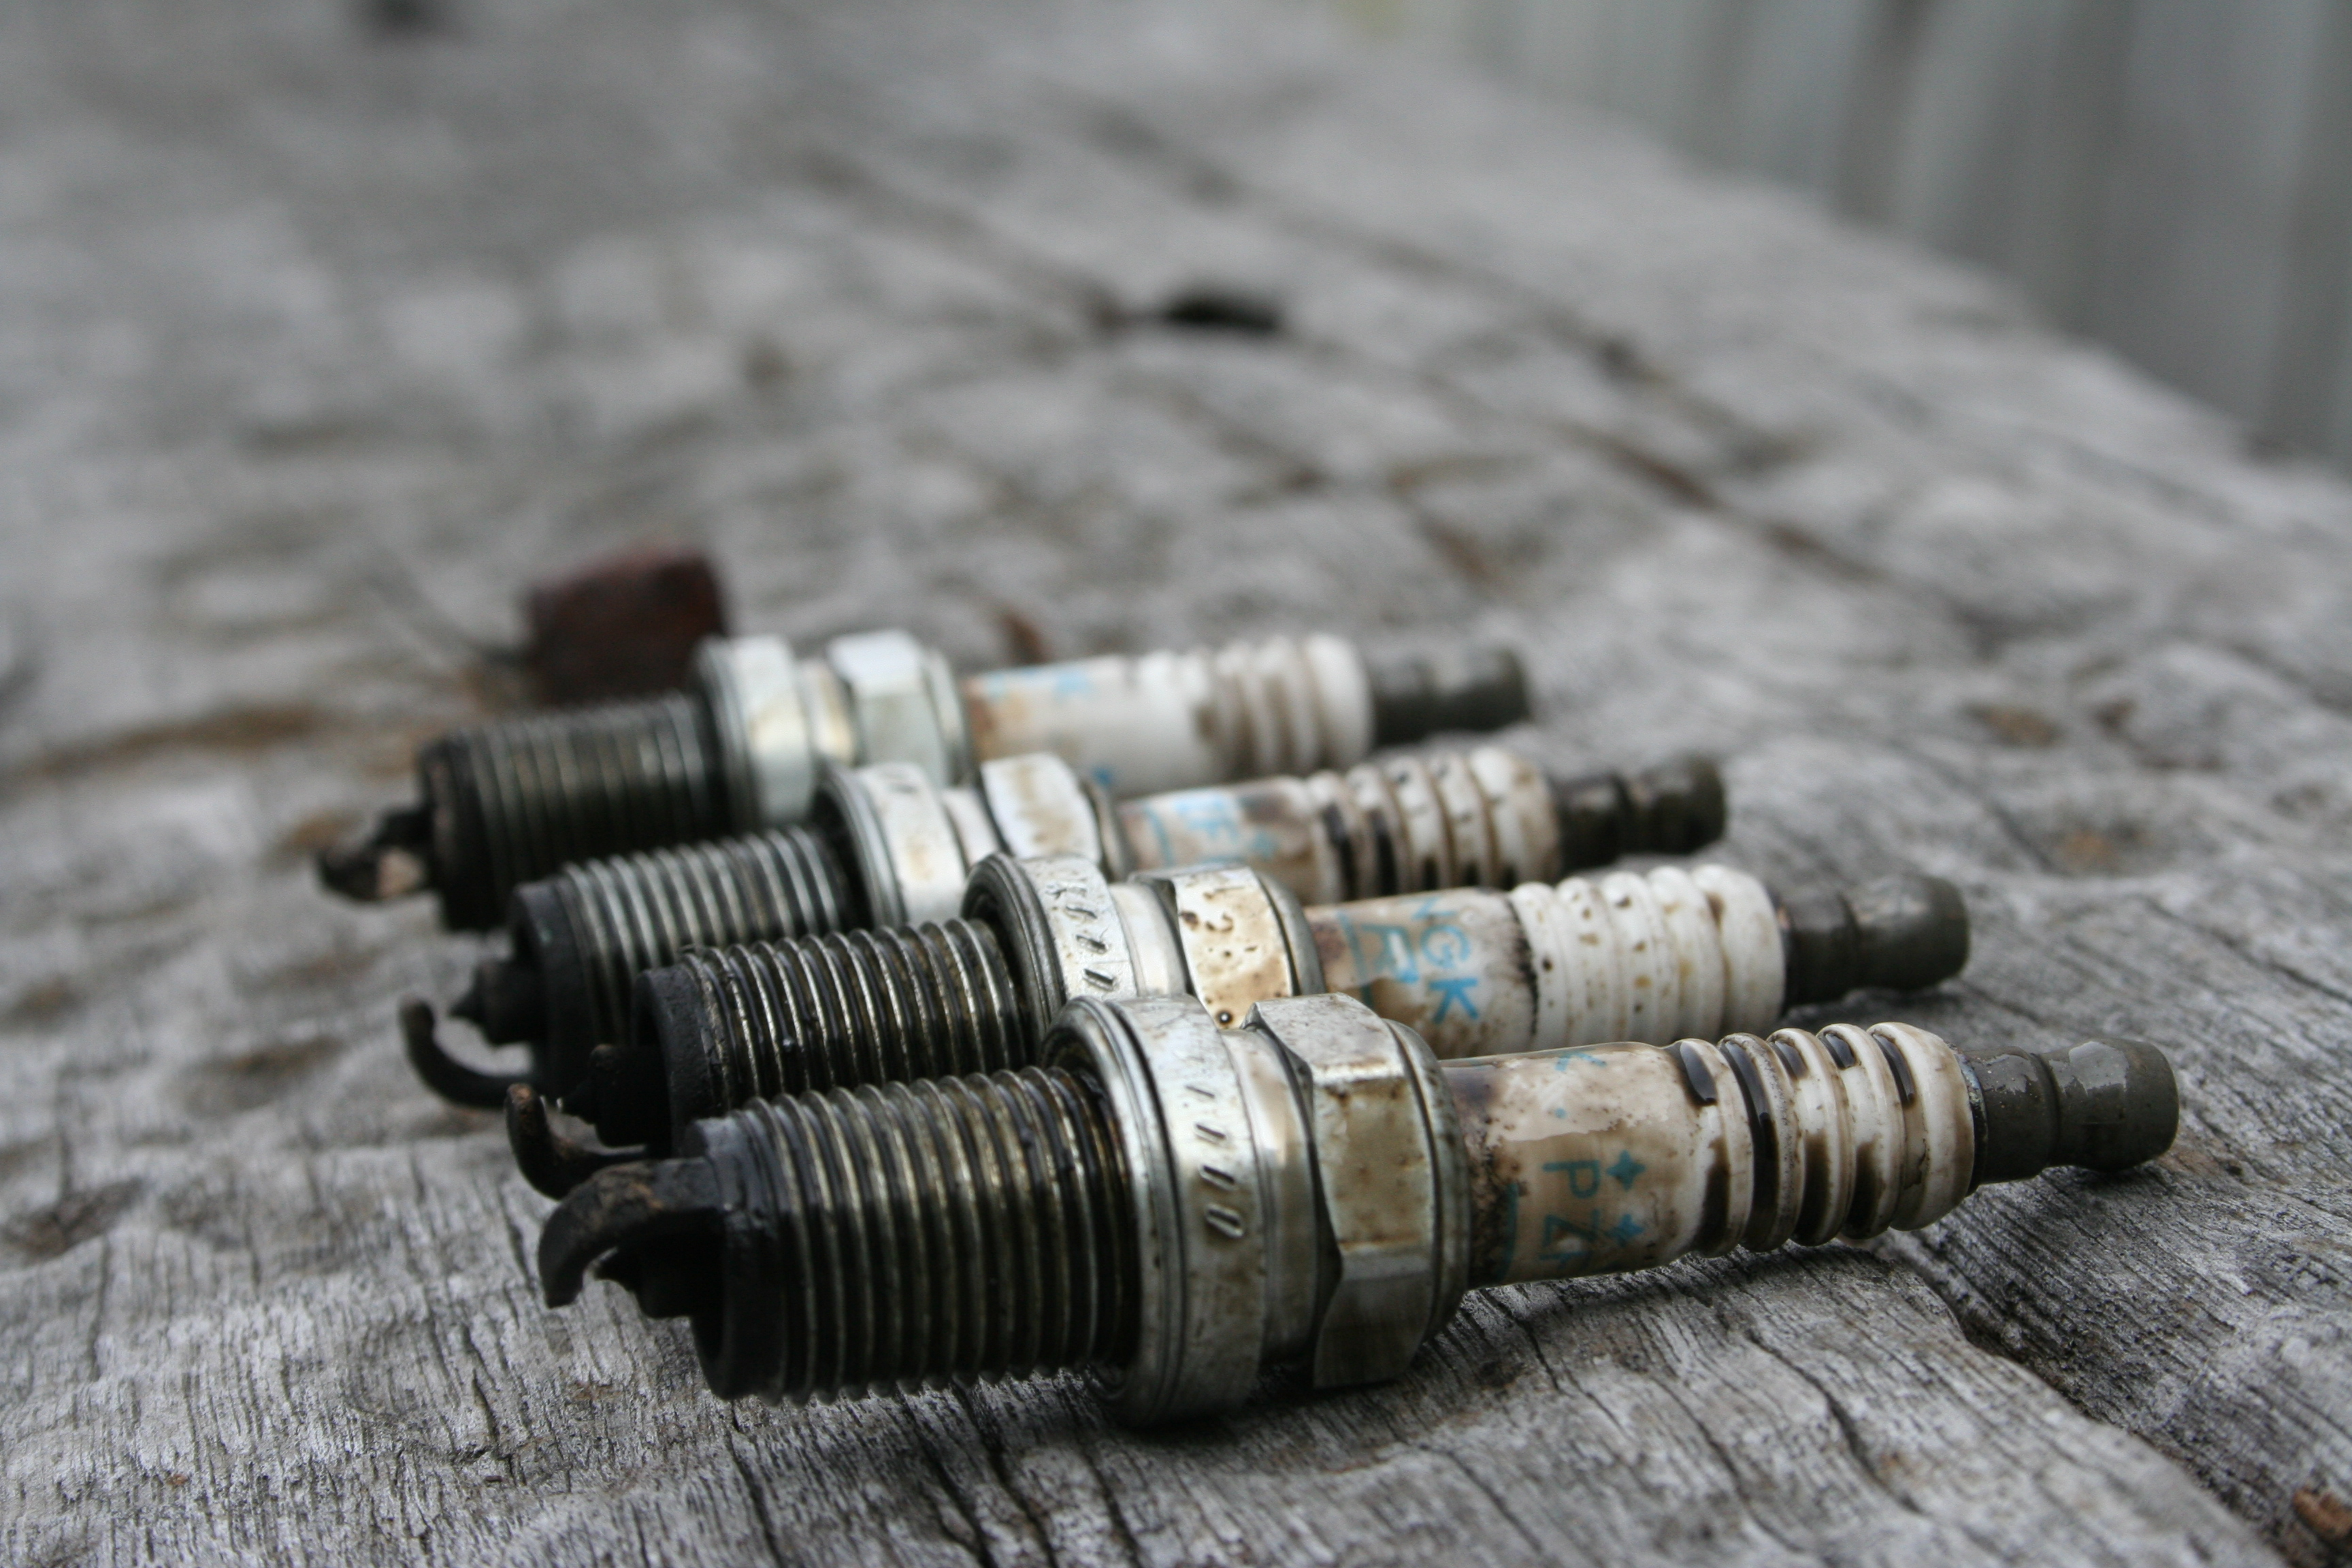 What Spark Plug Does My  Kawasaki Kfxr Take